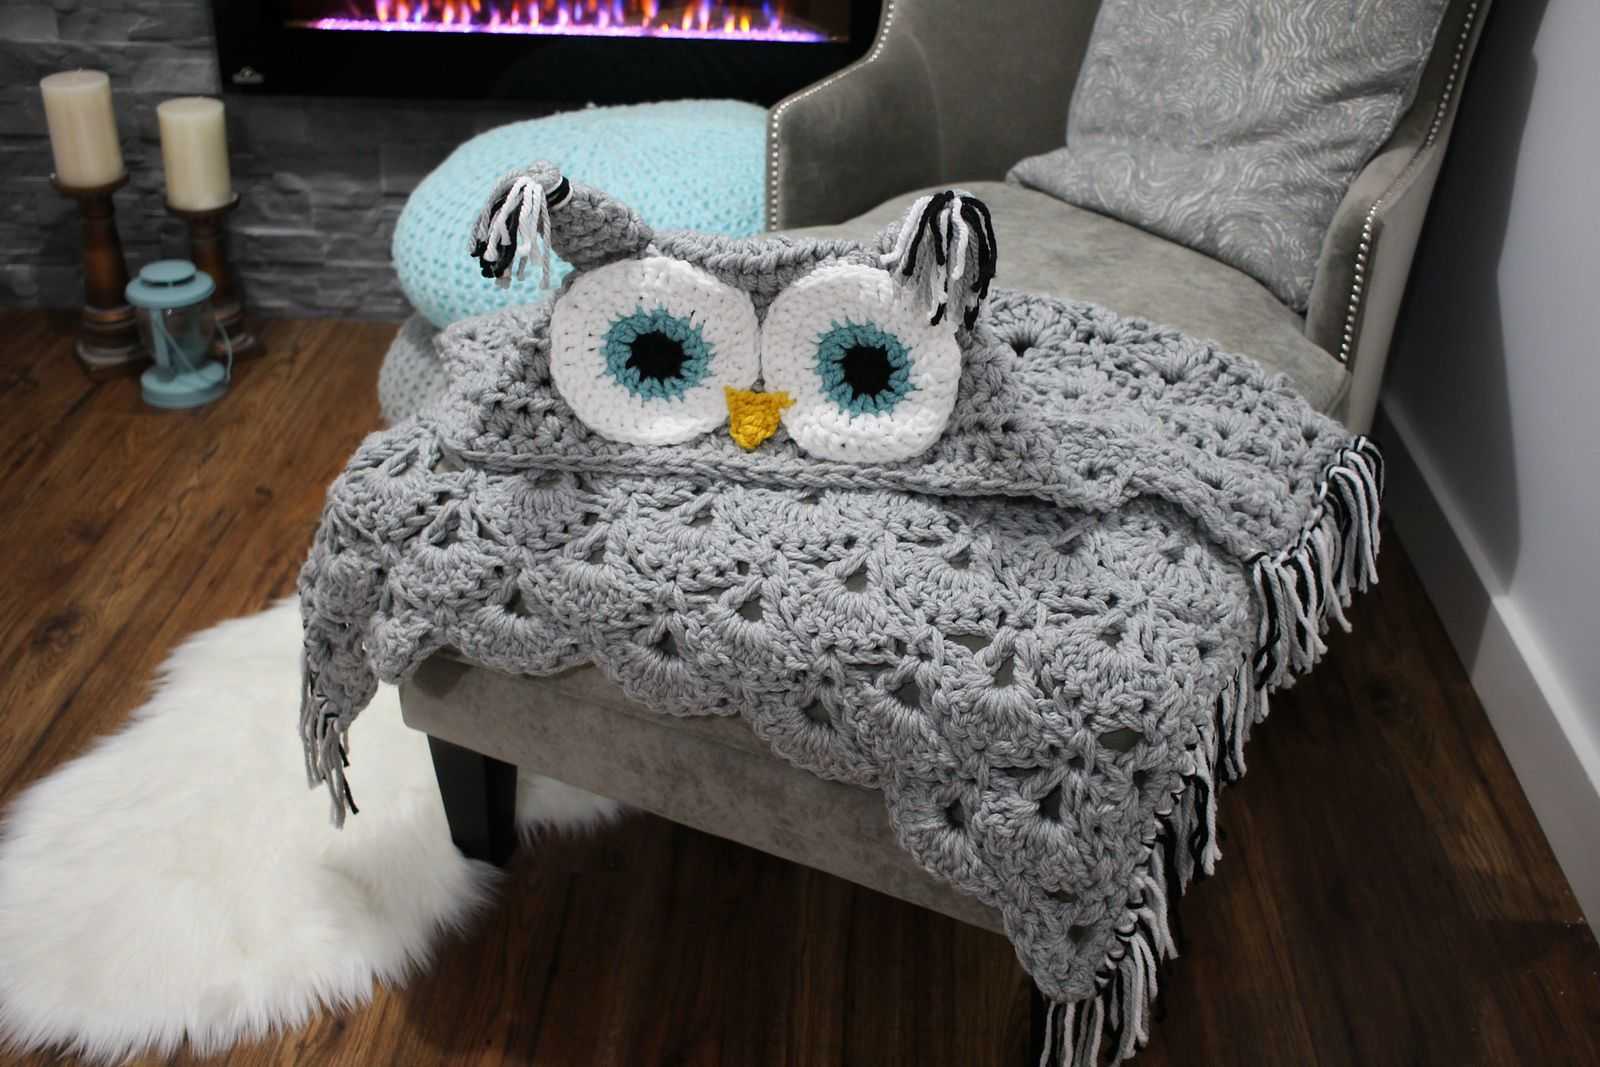 This Crocheted Owl Blanket Is the Only Thing You Need This Winter